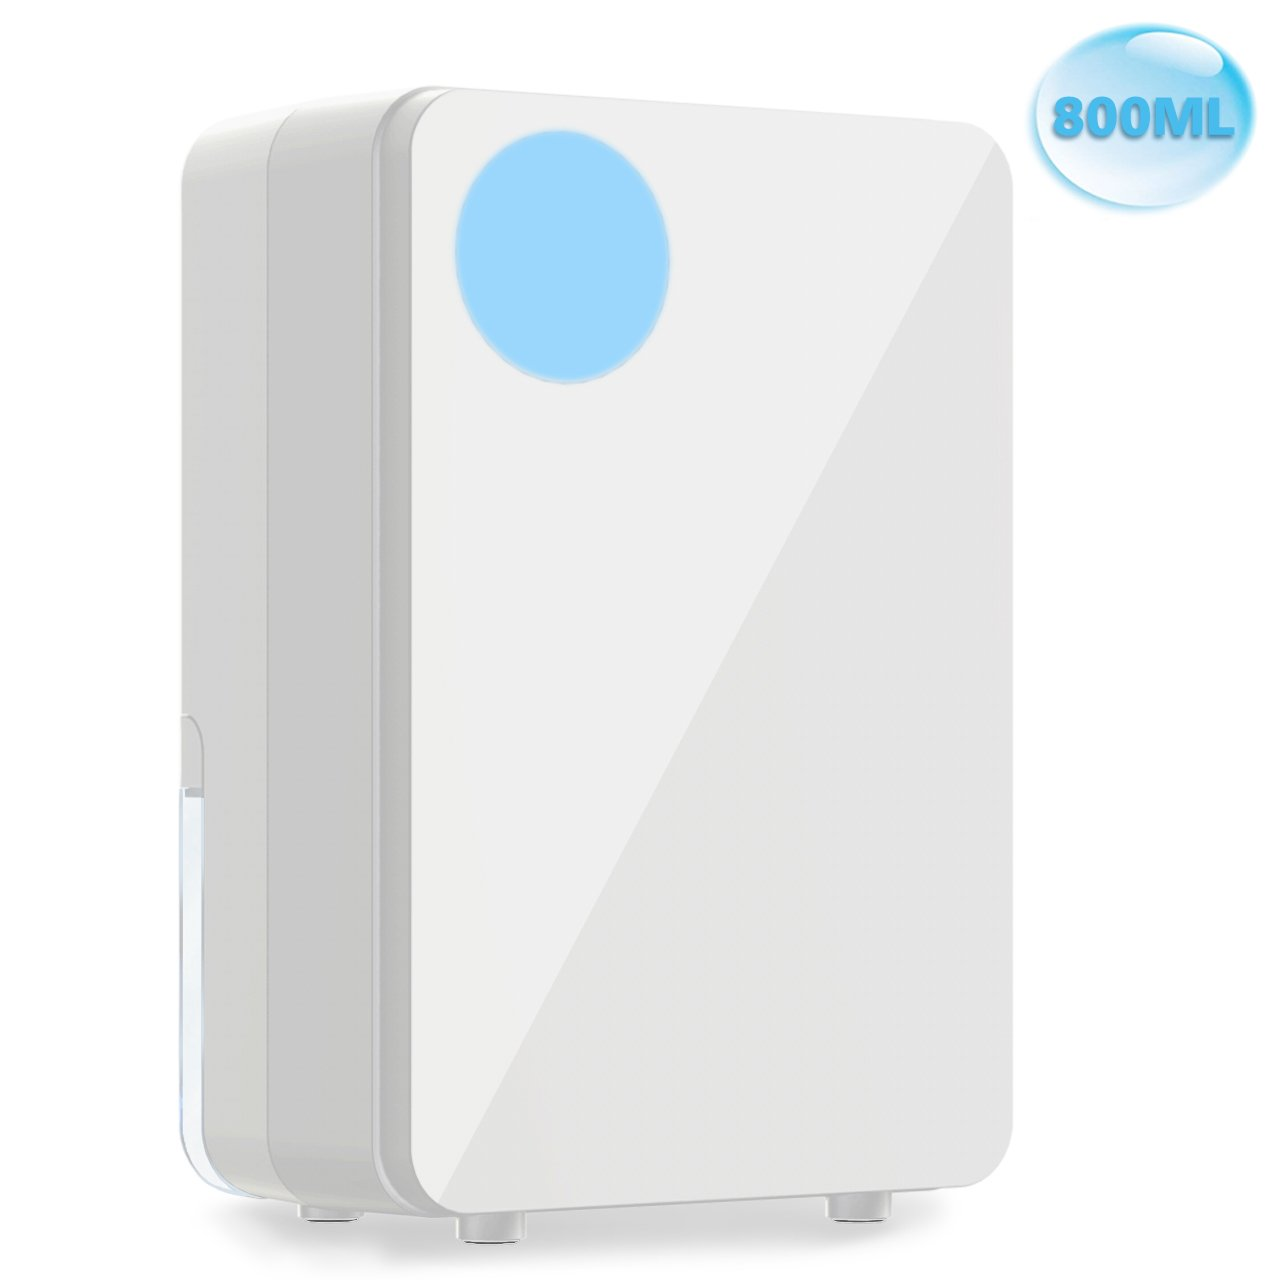 Small Air Dehumidifier, Ultra Quiet Thermo-Electric Dehumidifiers with 800ml (33 oz) Tank, Portable for Damp Air, Mold, Moisture in Home, Kitchen, Bedroom, Basement, Caravan, Office, Garage up to 108